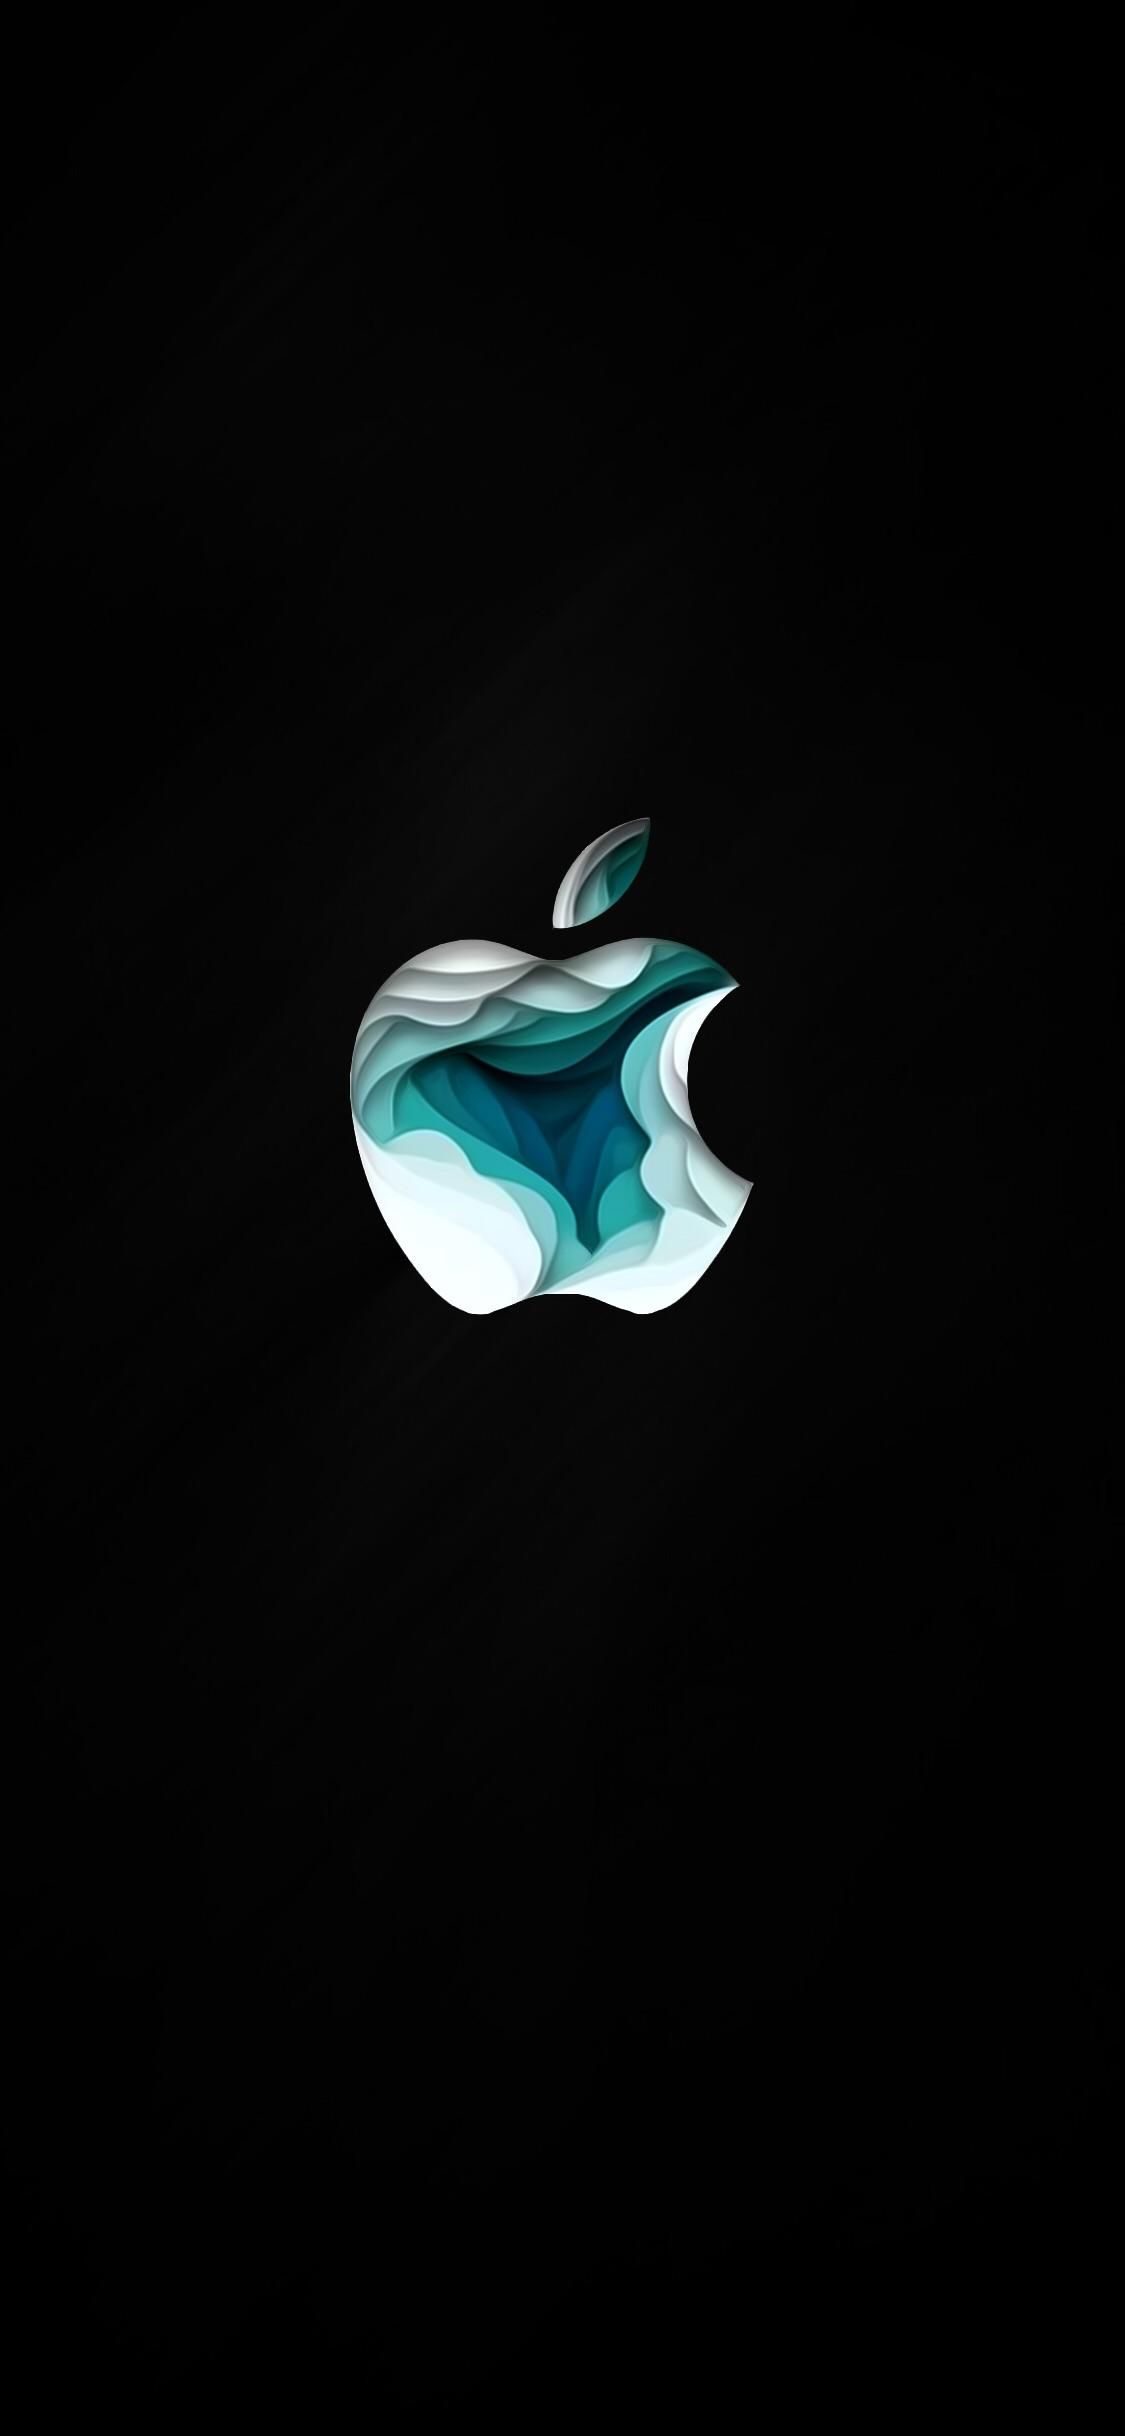 Apple Special Event Logo. True Black. #blackwallpaperiphone